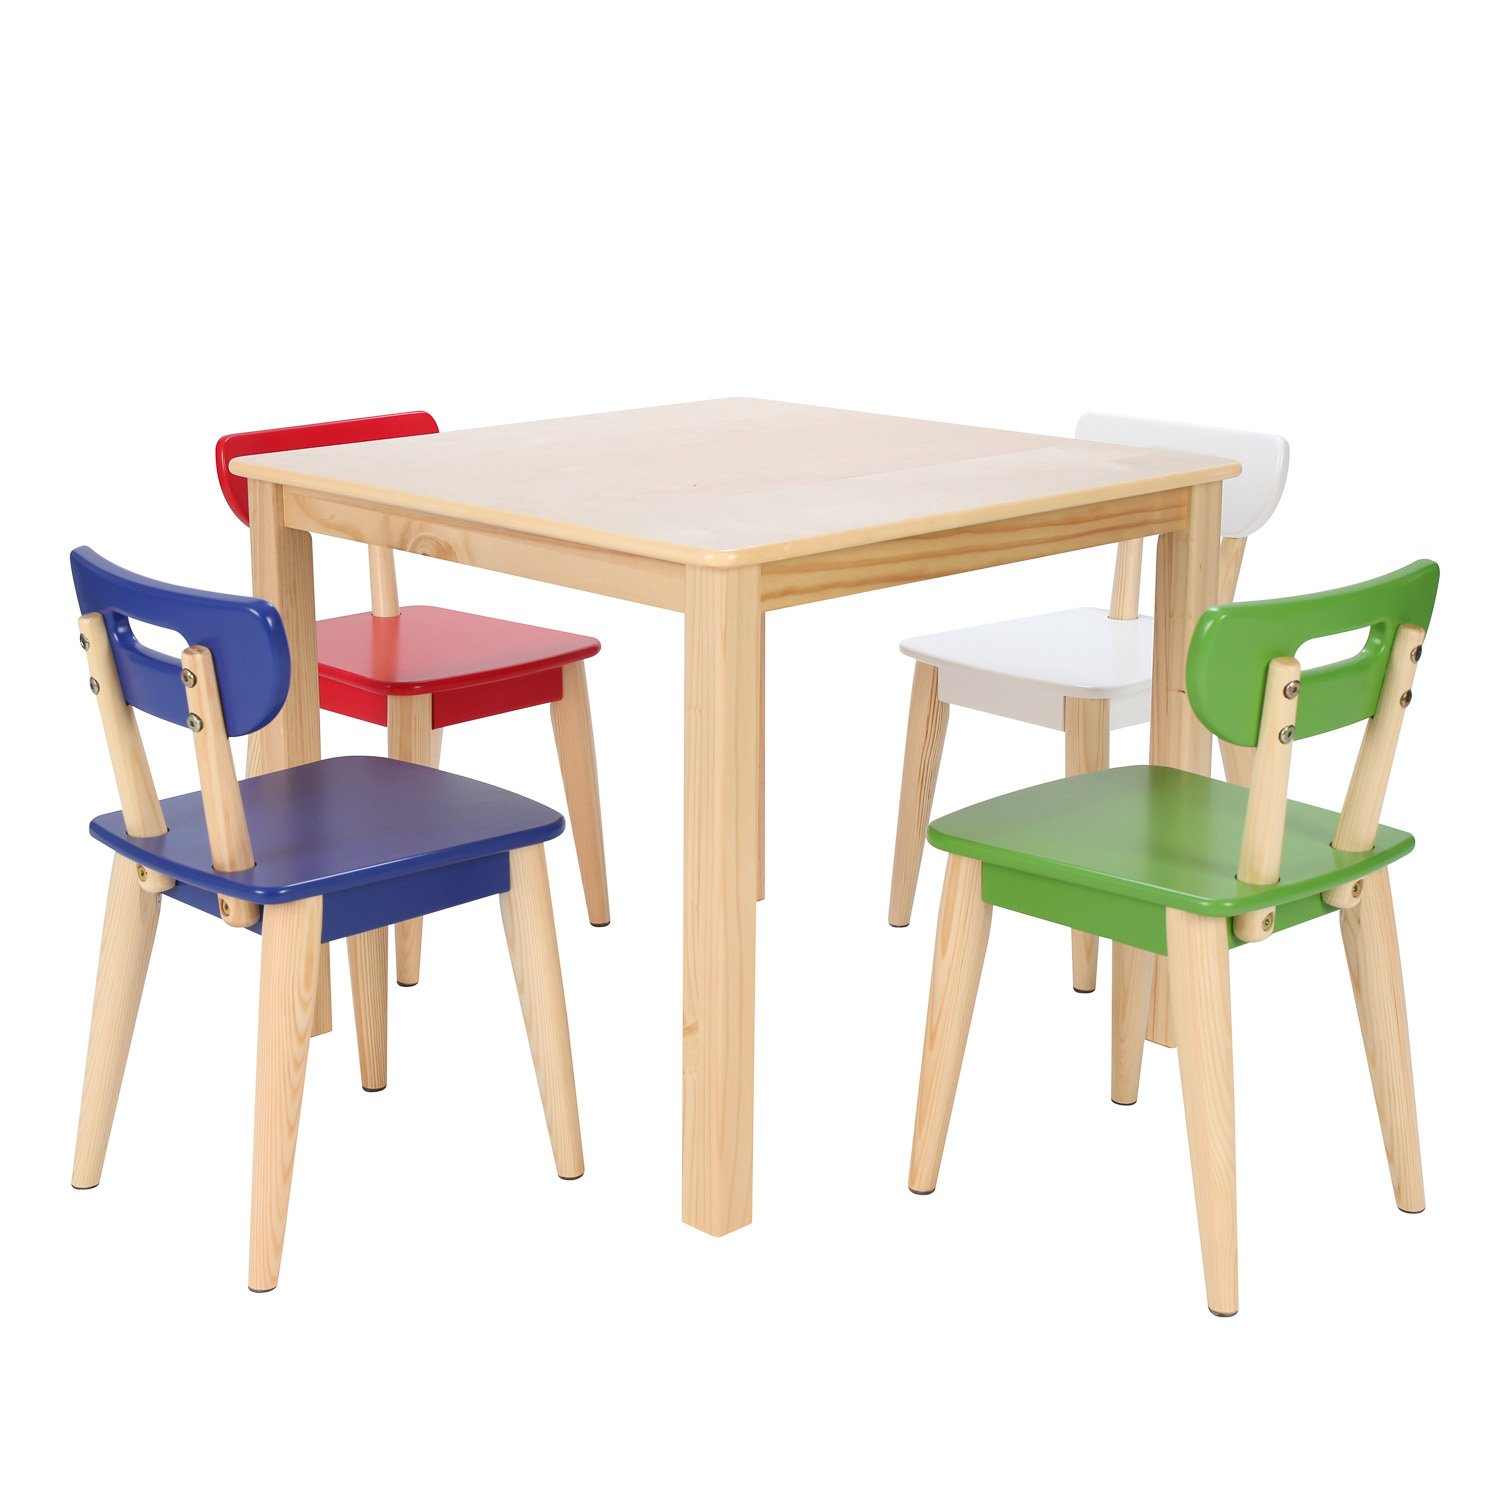 Max U0026 Lily Natural Wood Kid And Toddler Square Table + Modern Chairs (Blue,  Red, Green, White)